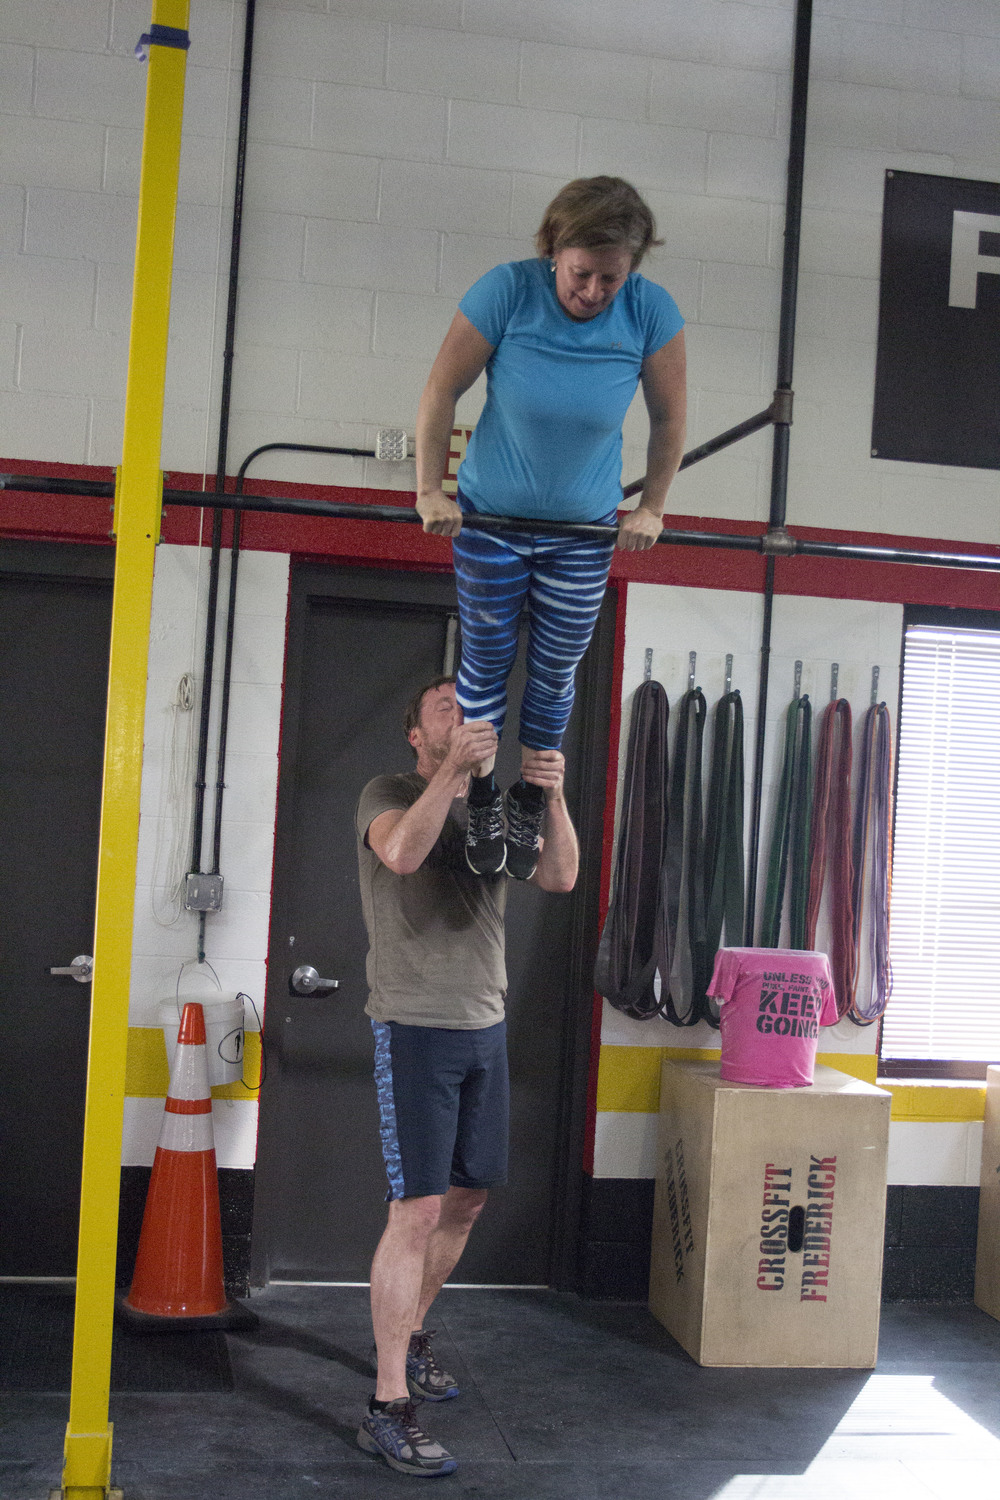 Jill and Peter, assisting in a bar muscle up.